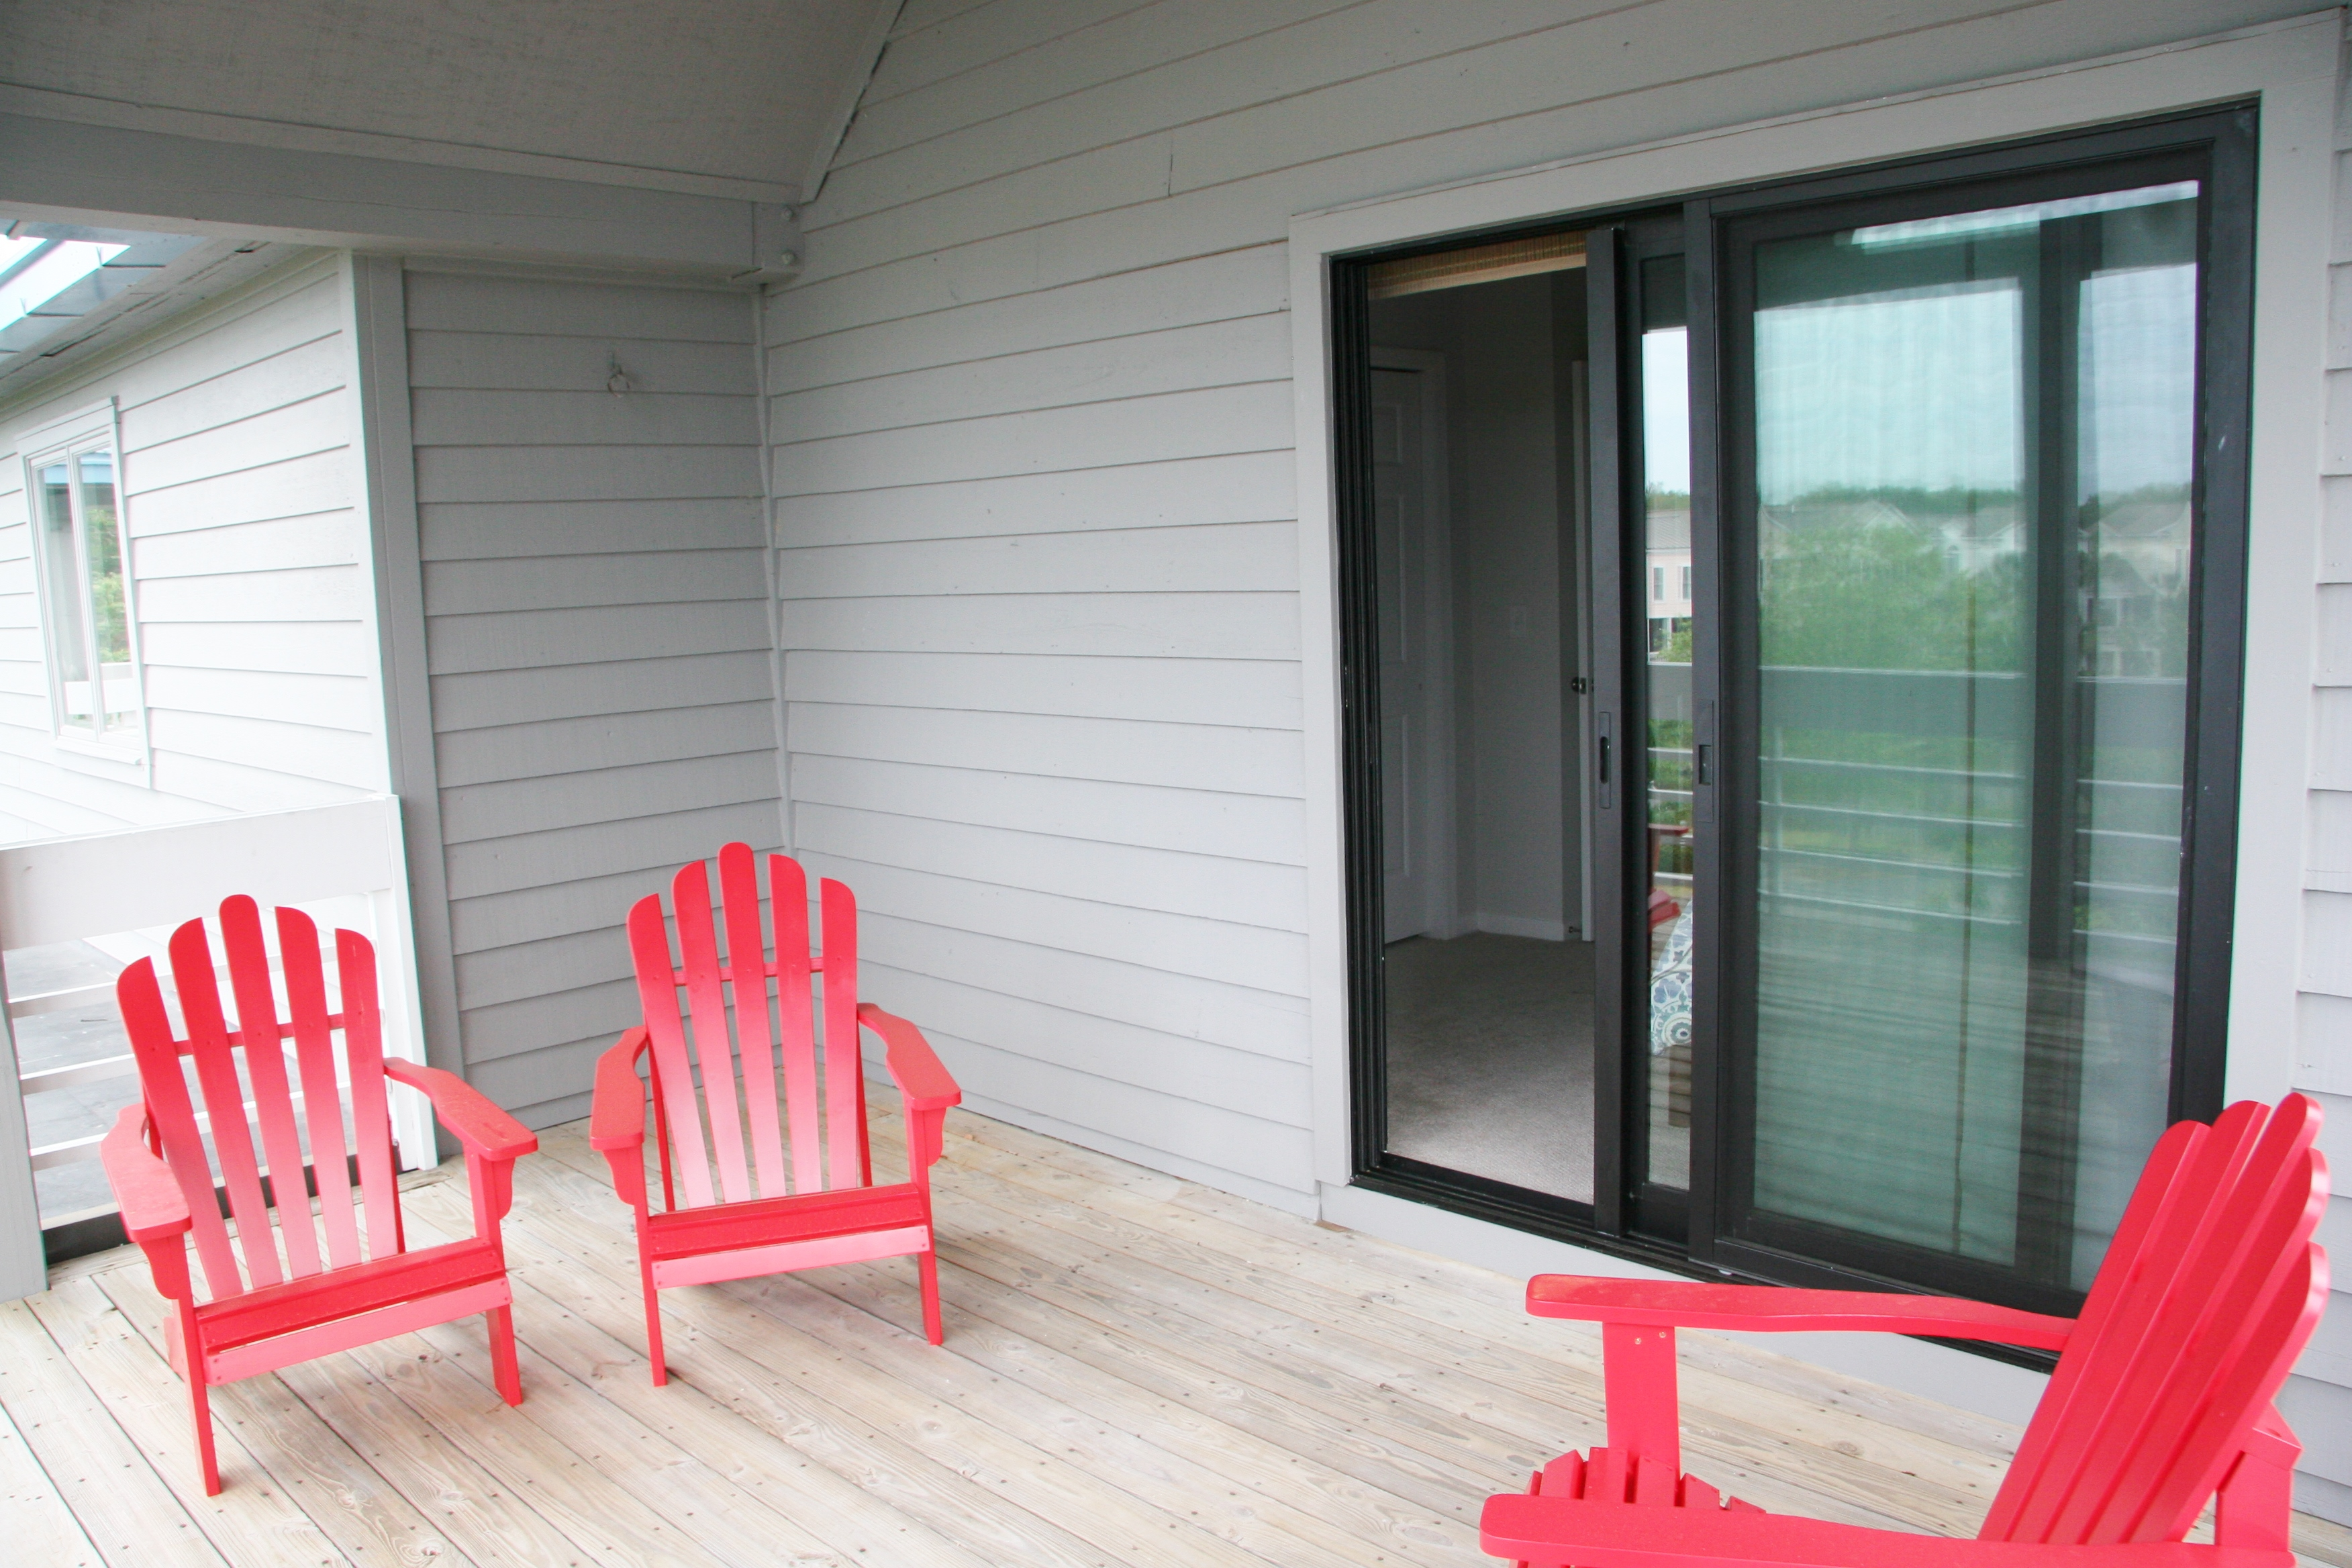 Relax in the new chairs on the guest bedroom deck.